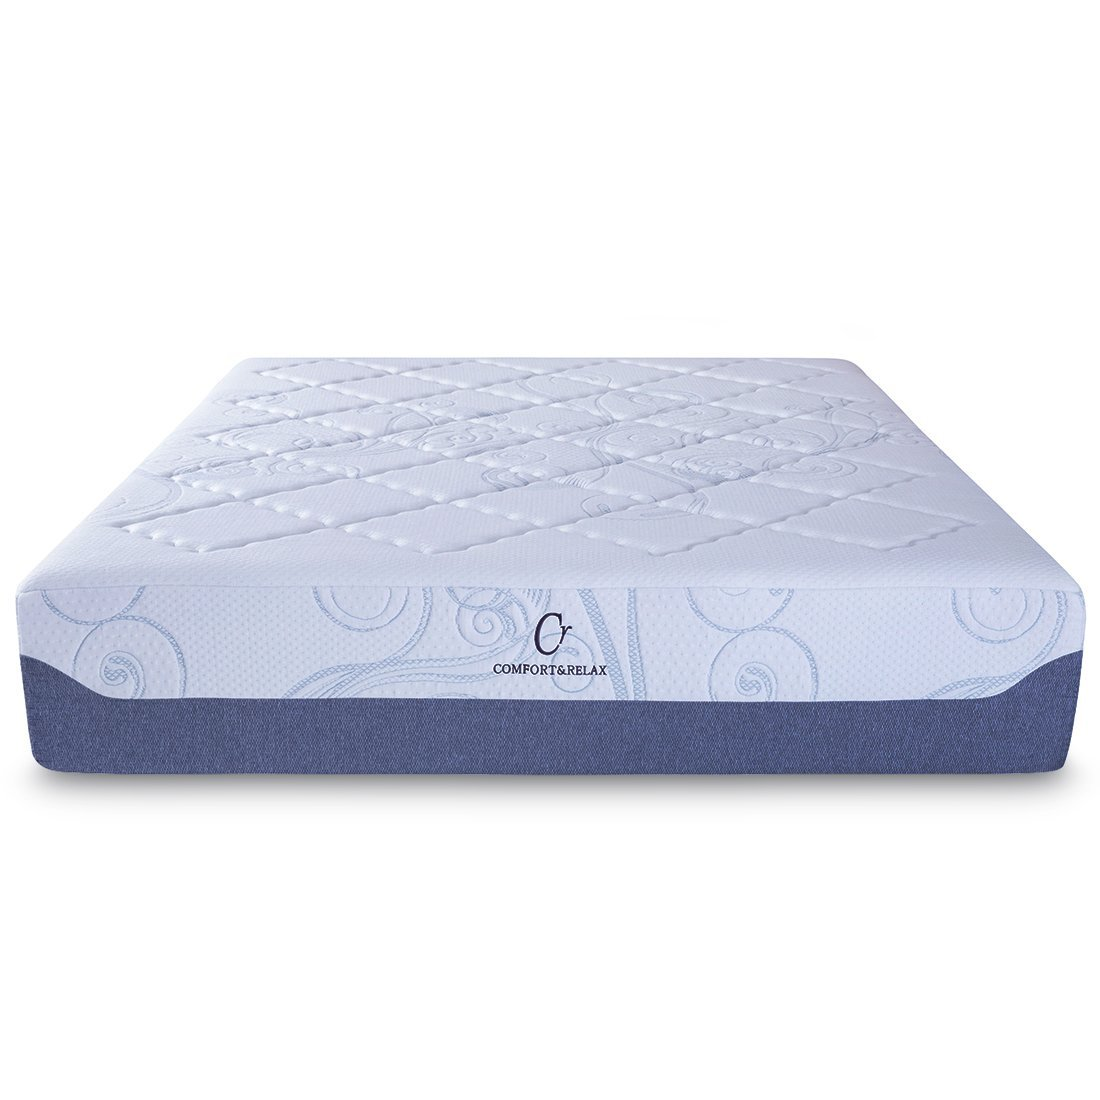 Latex Mattress Companies Best Latex Mattresses Reviewed Top 10 Comparison And